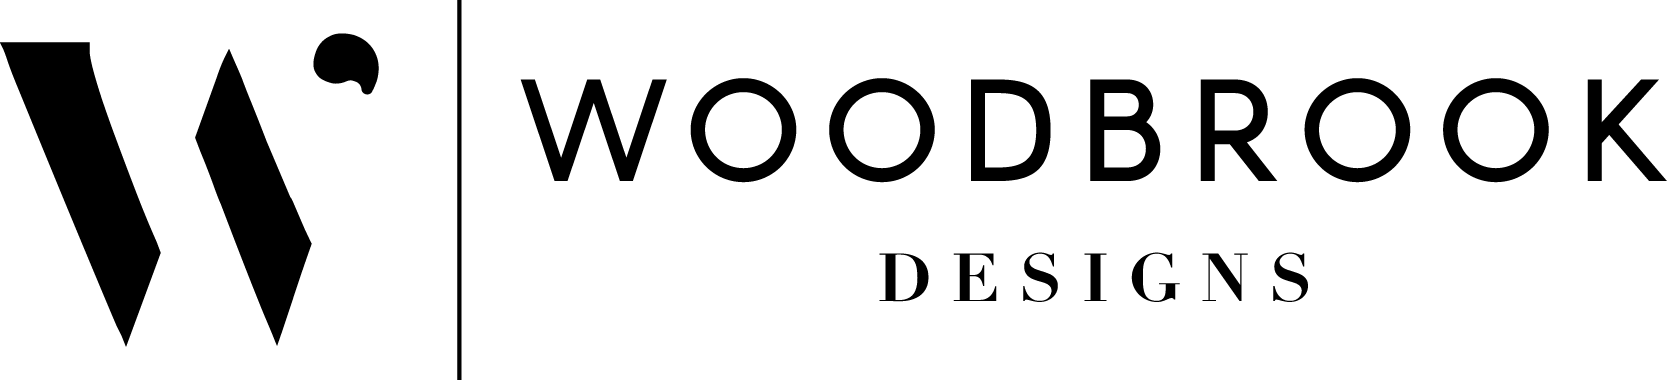 Woodbrook Secondary Logo Black.png